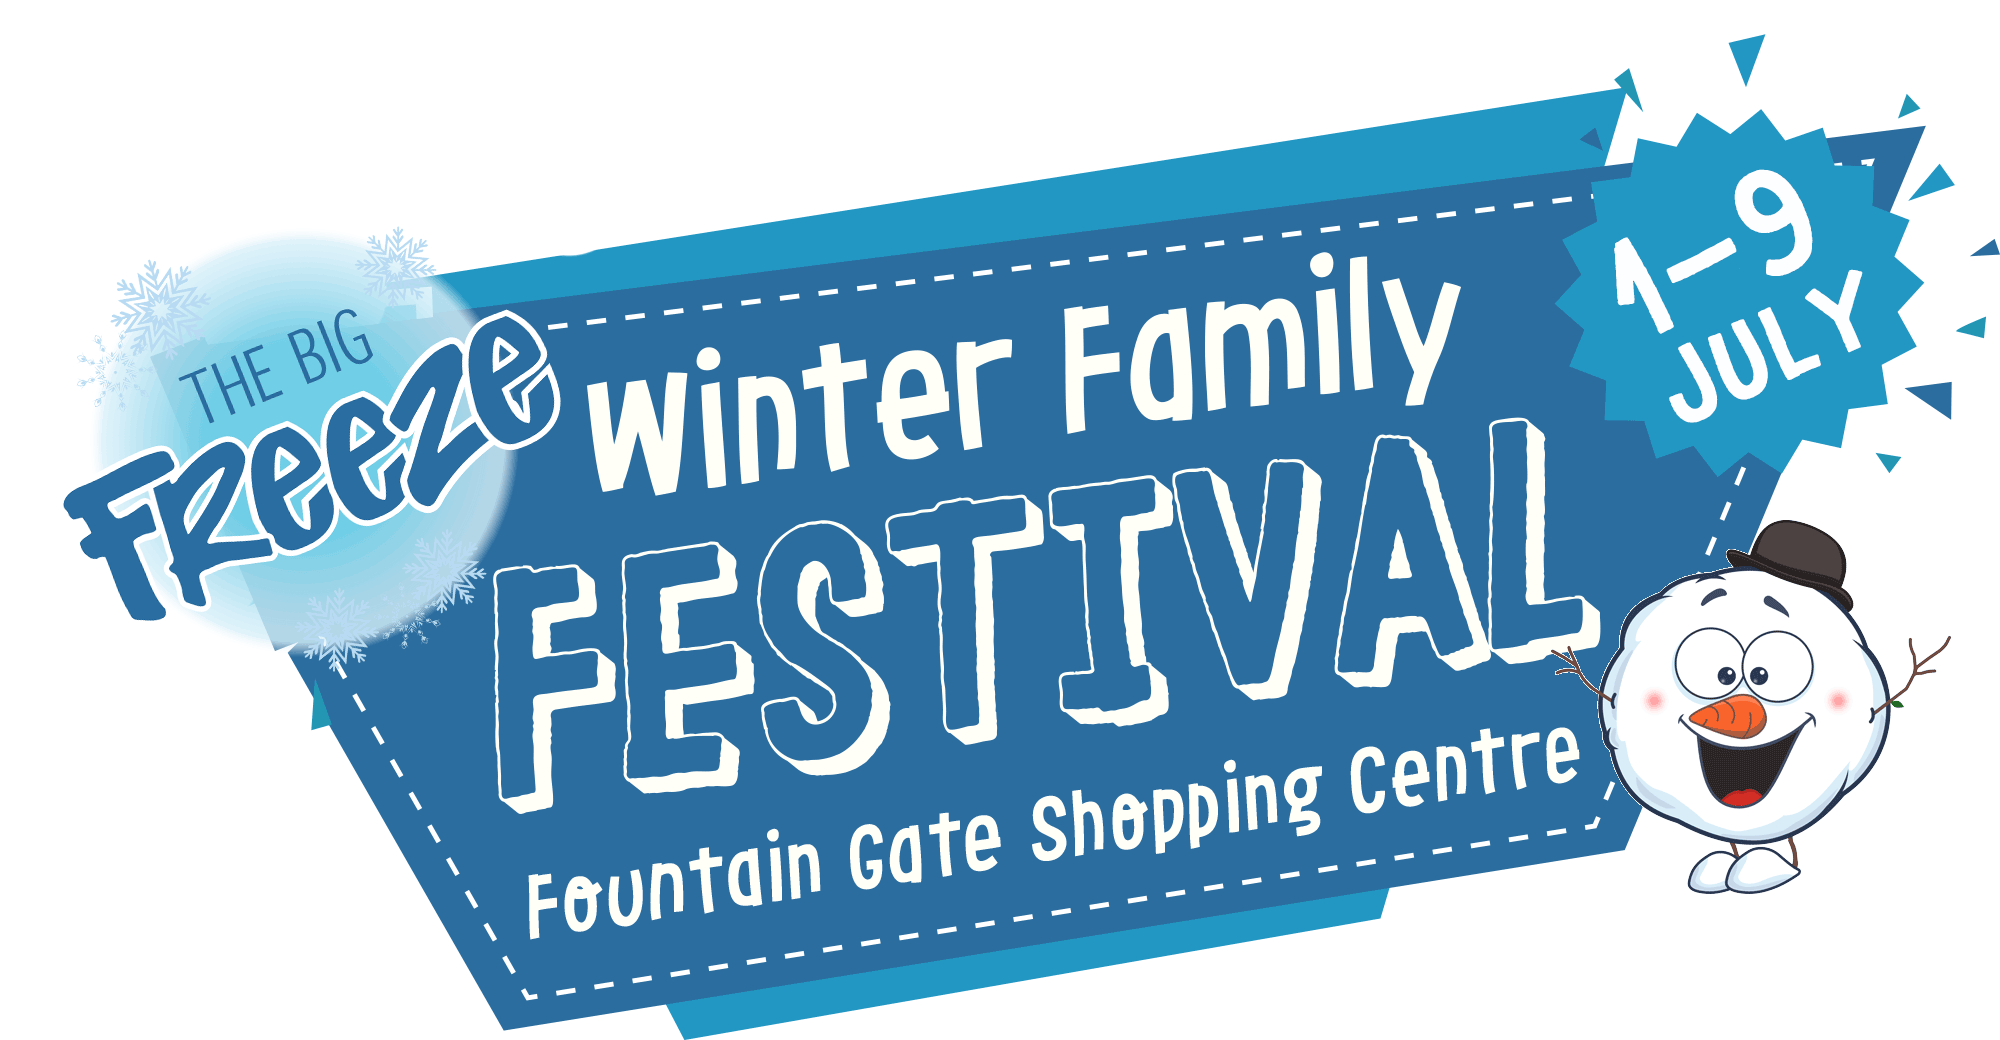 Find tickets from The Big Freeze Winter Family Festival